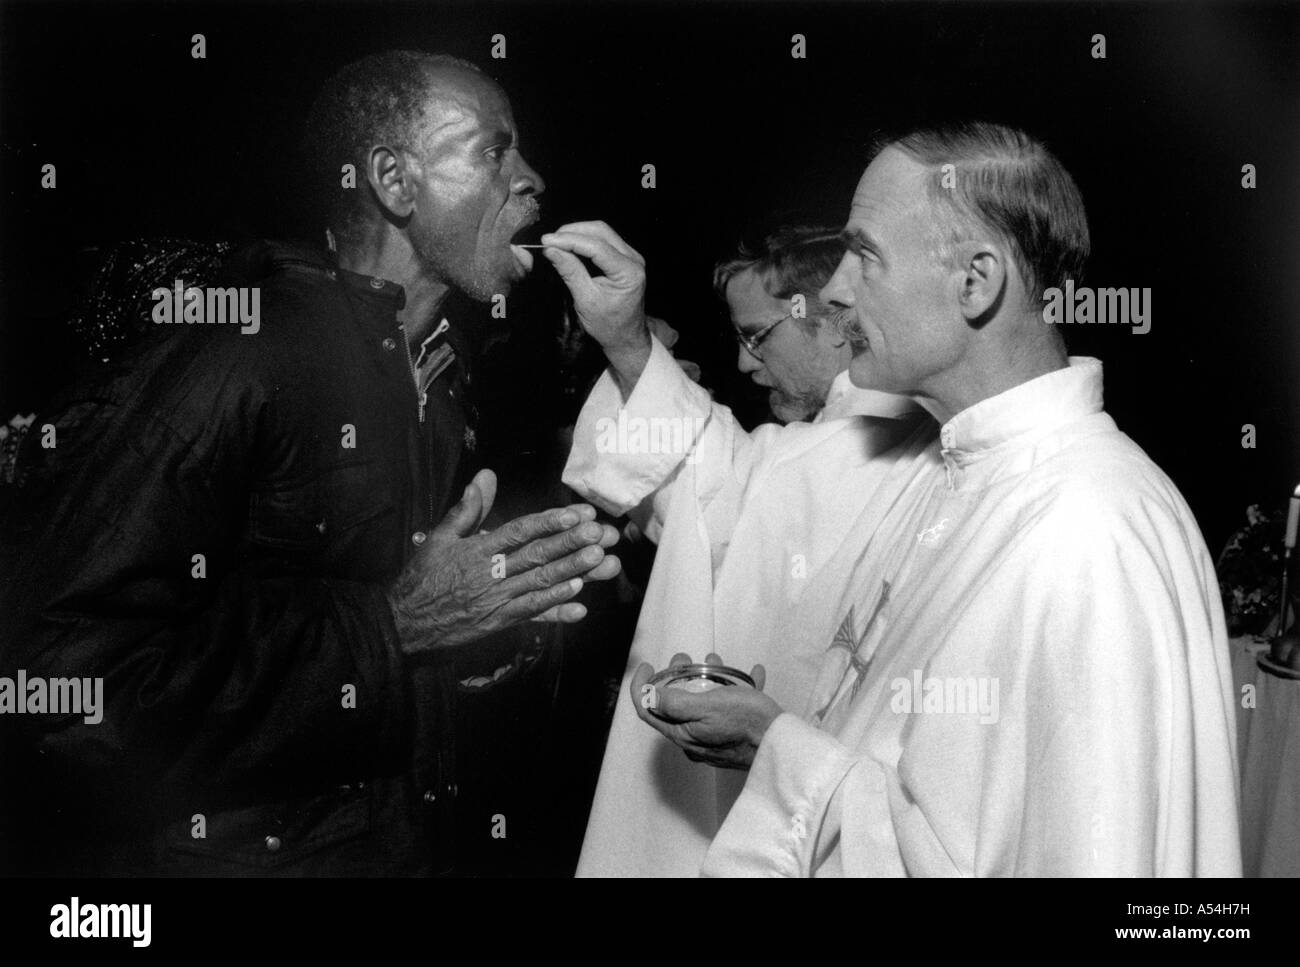 Painet hq1503 black and white religion american maryknoll priest giving bucharist issenye tanzania images bw country - Stock Image